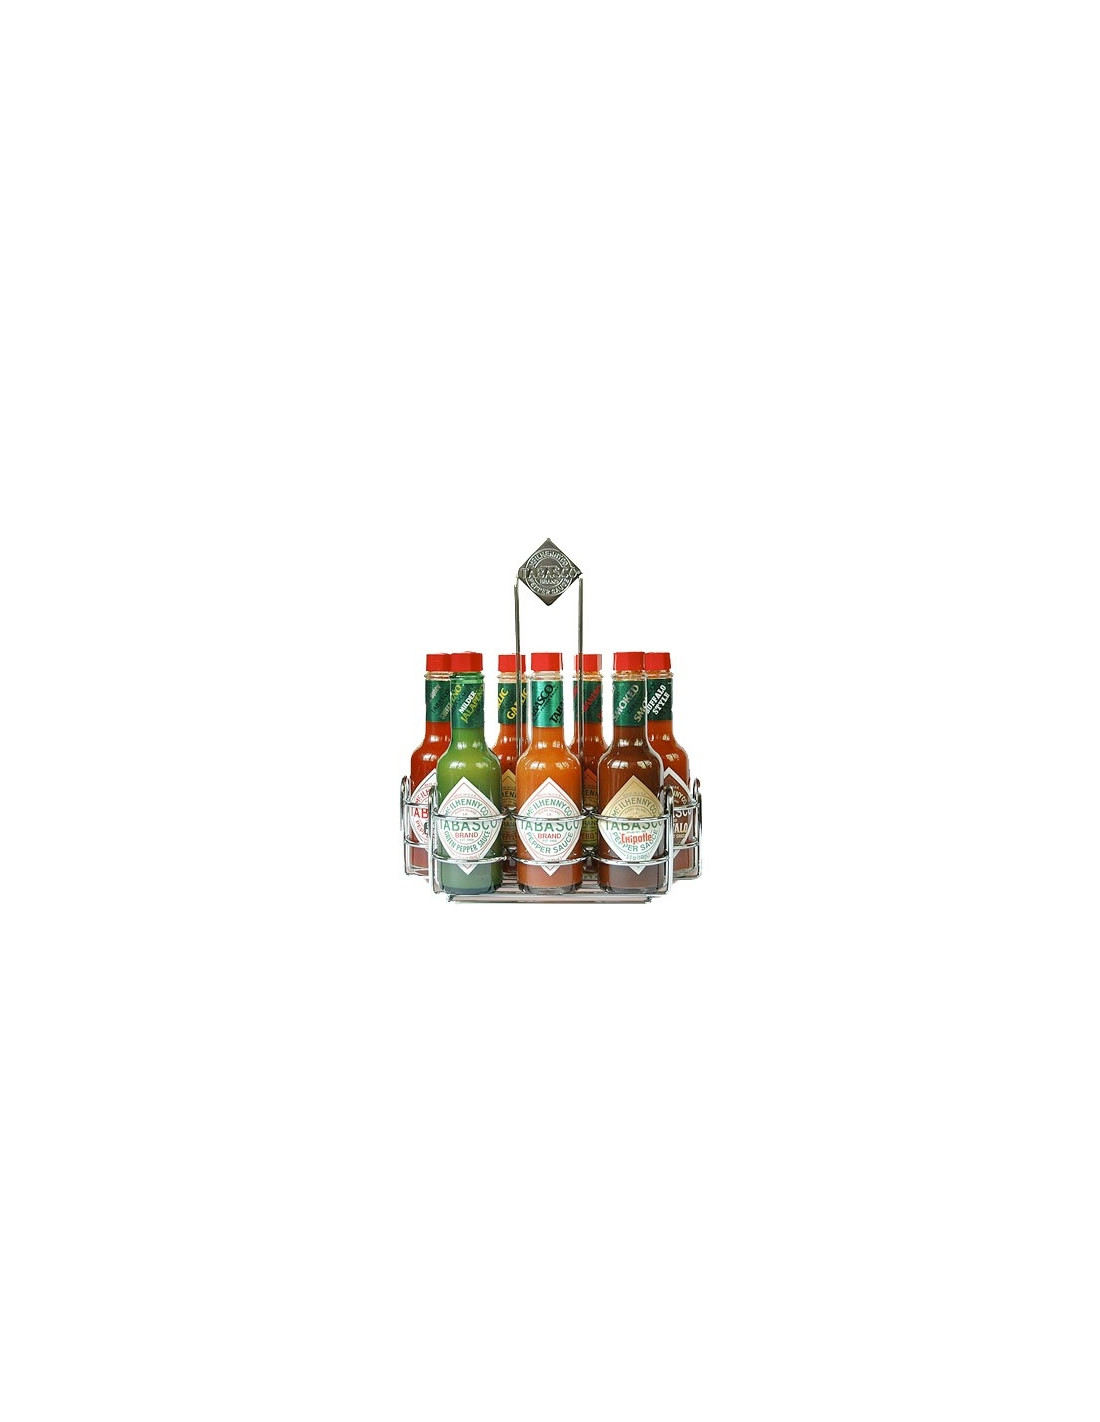 Coffret de 7 sauces tabasco